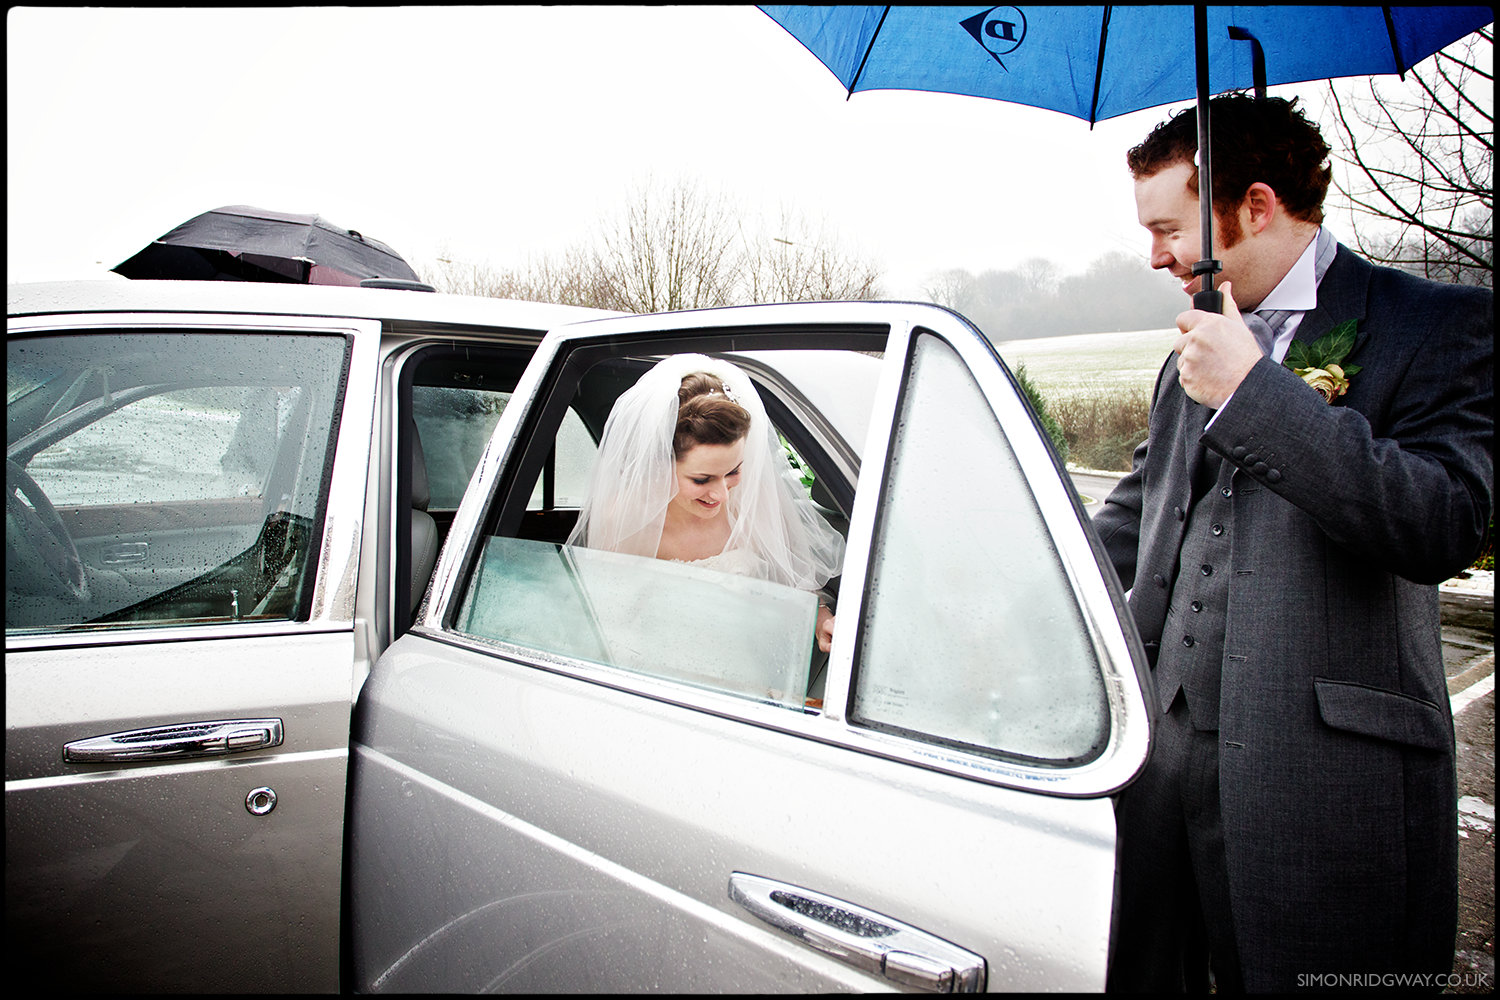 Reportage Wedding Photography, Miskin, South Wales